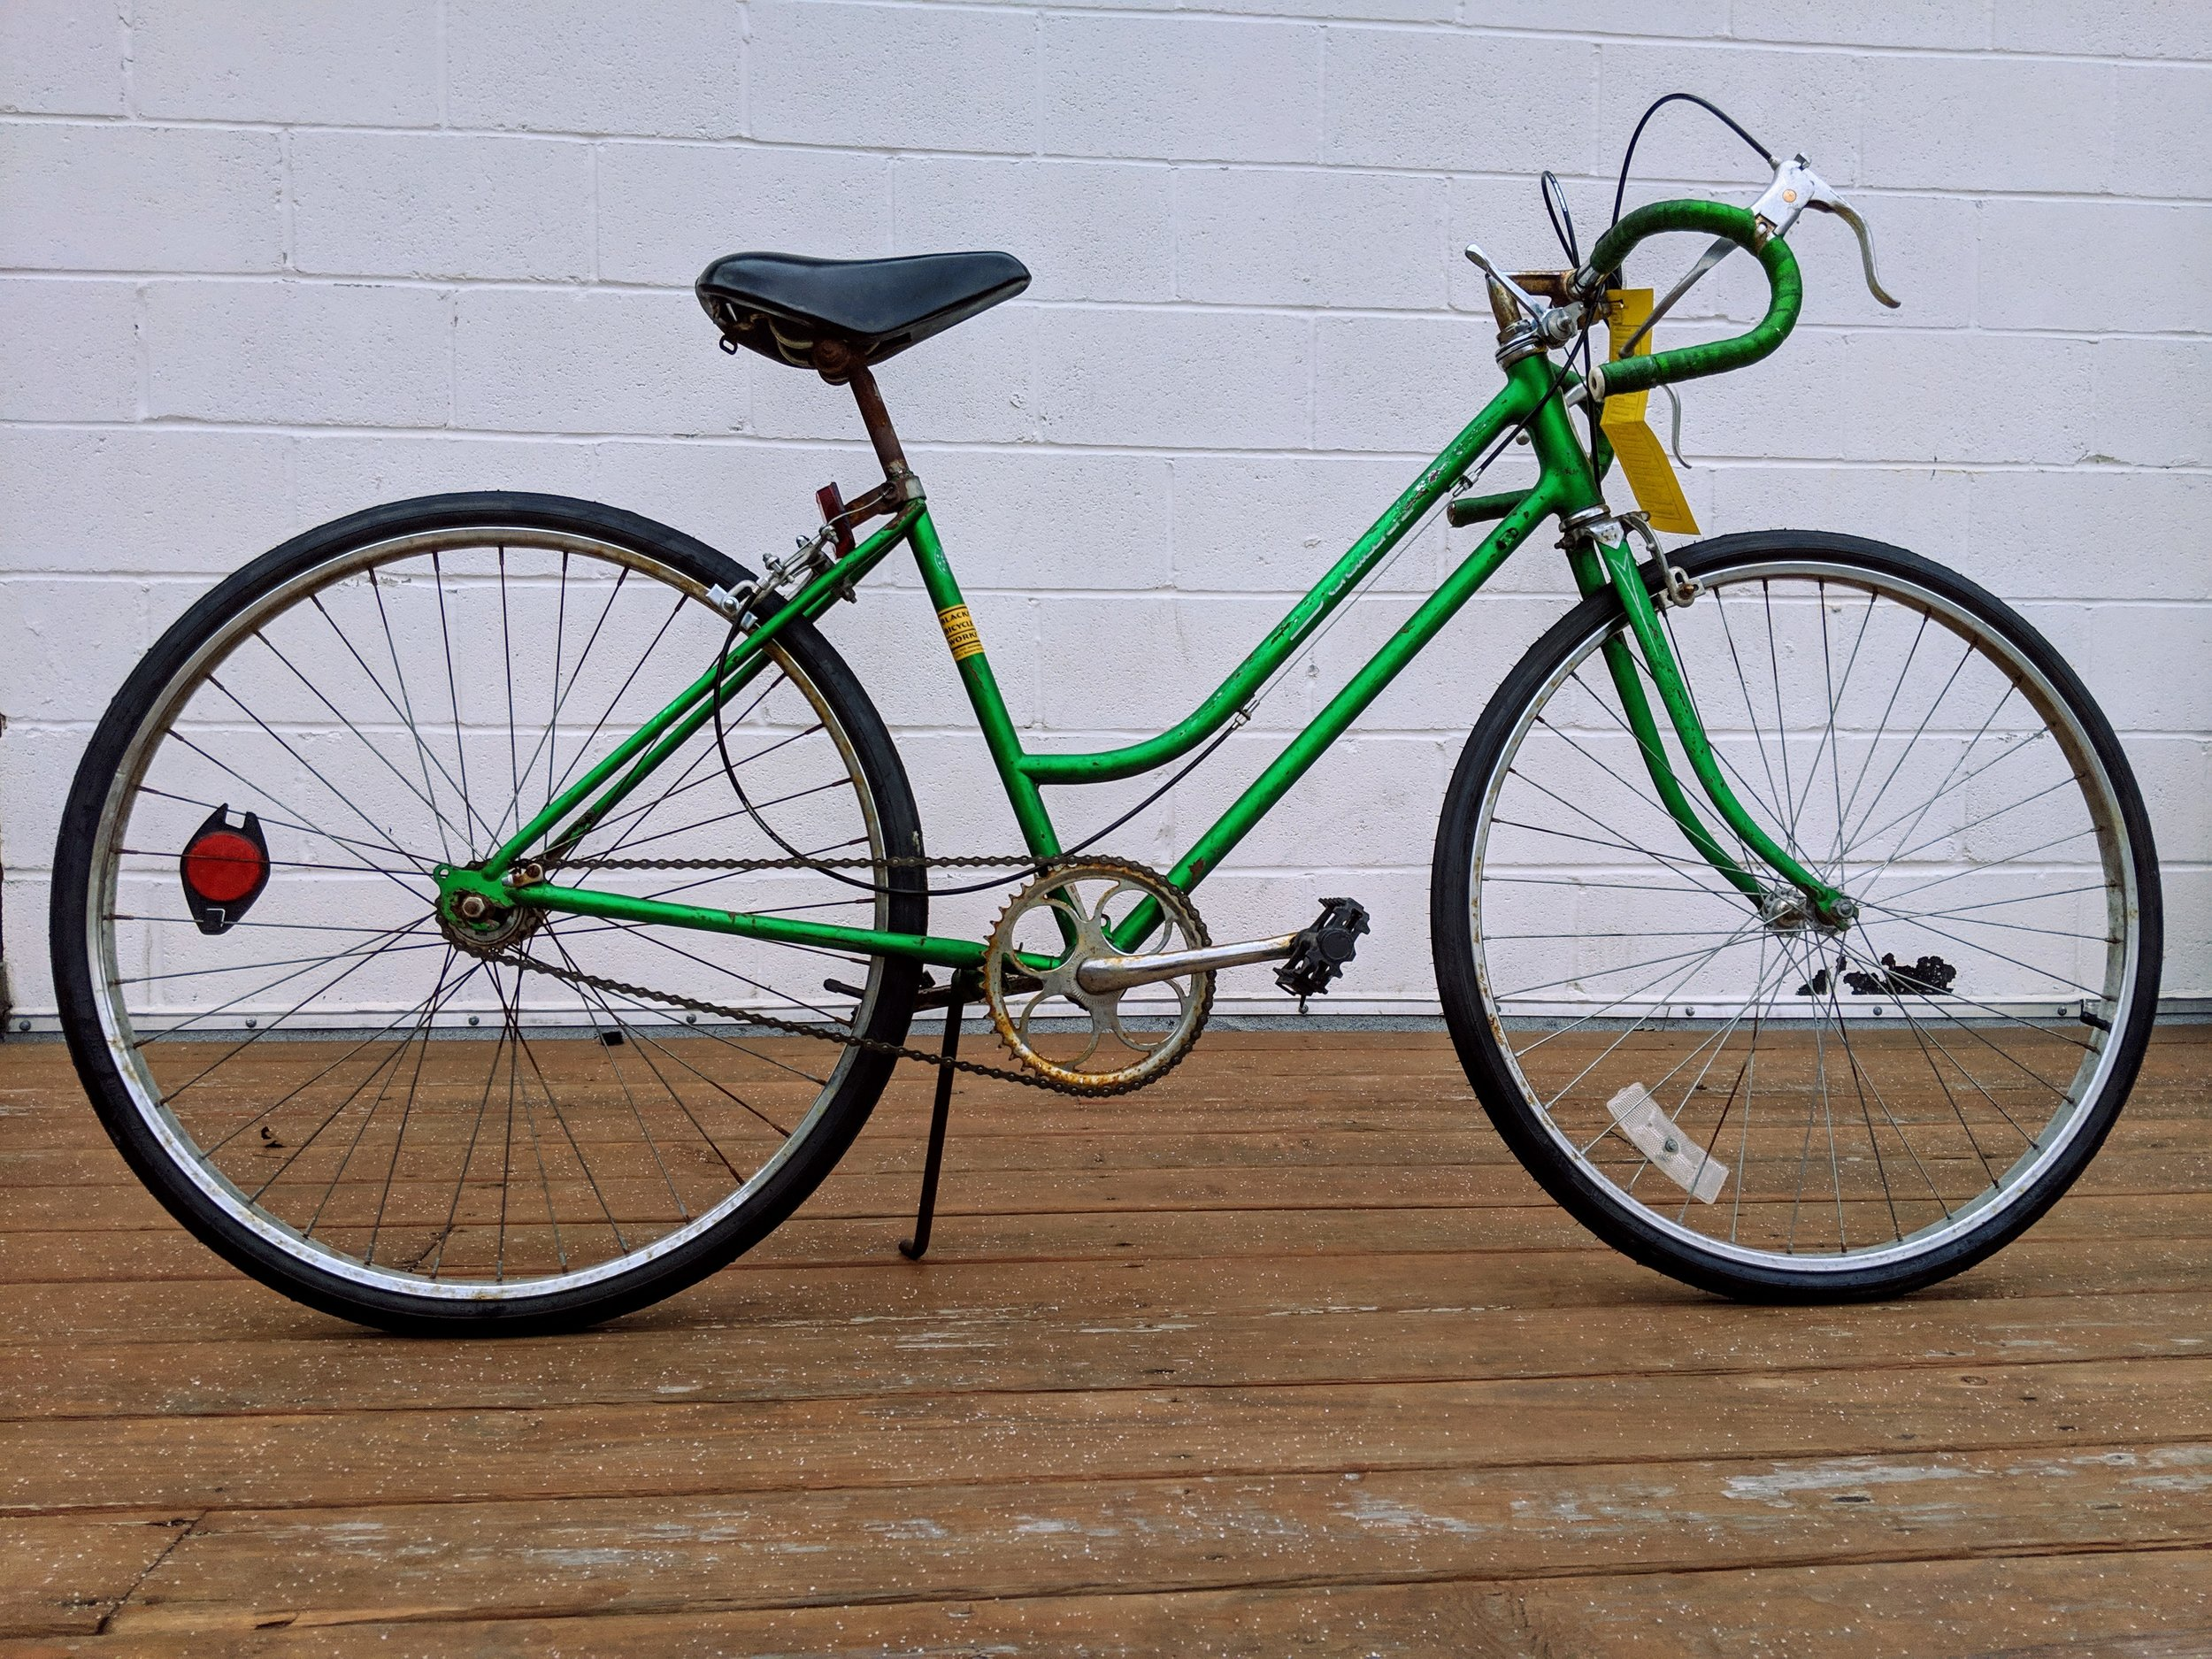 44cm Green Schwinn Single Speed $175